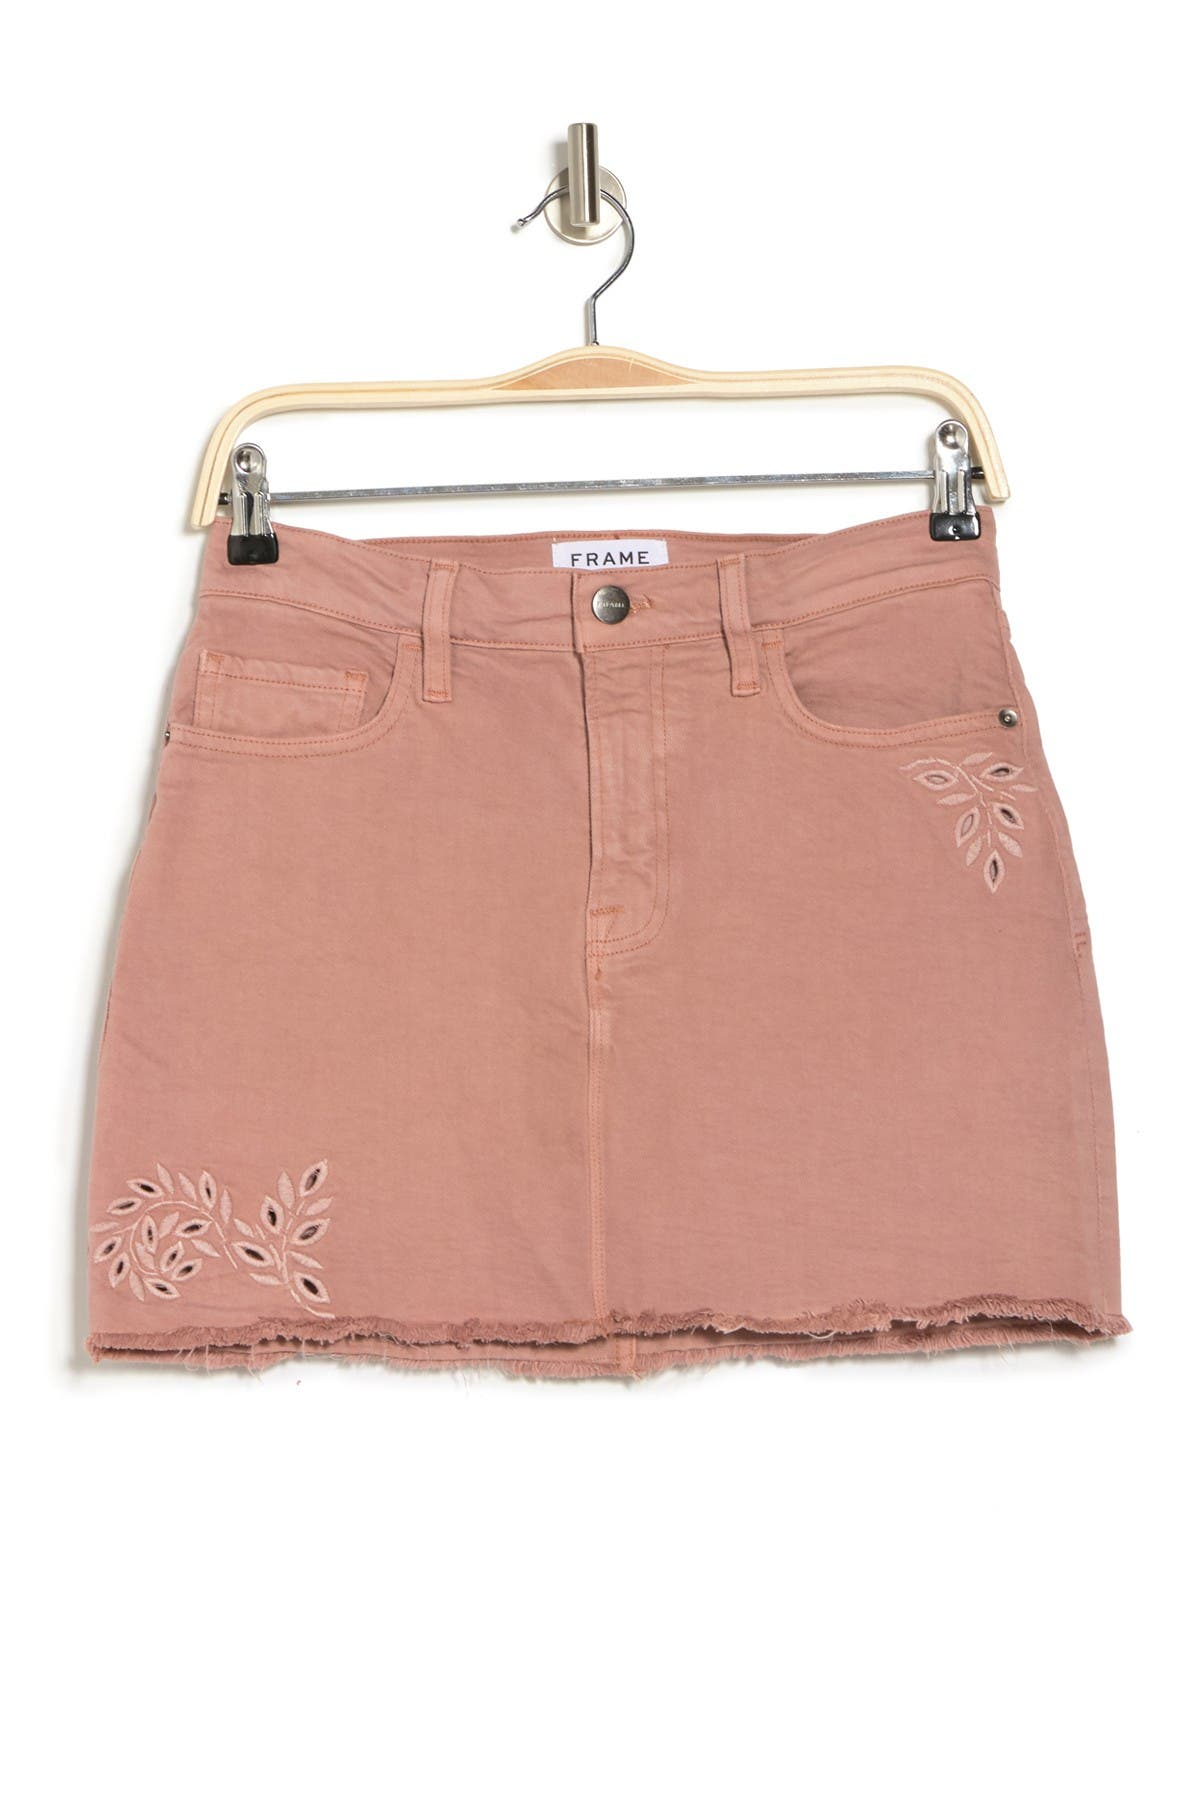 Image of FRAME Le Mini Skirt Foliage Eyelet Denim Skirt